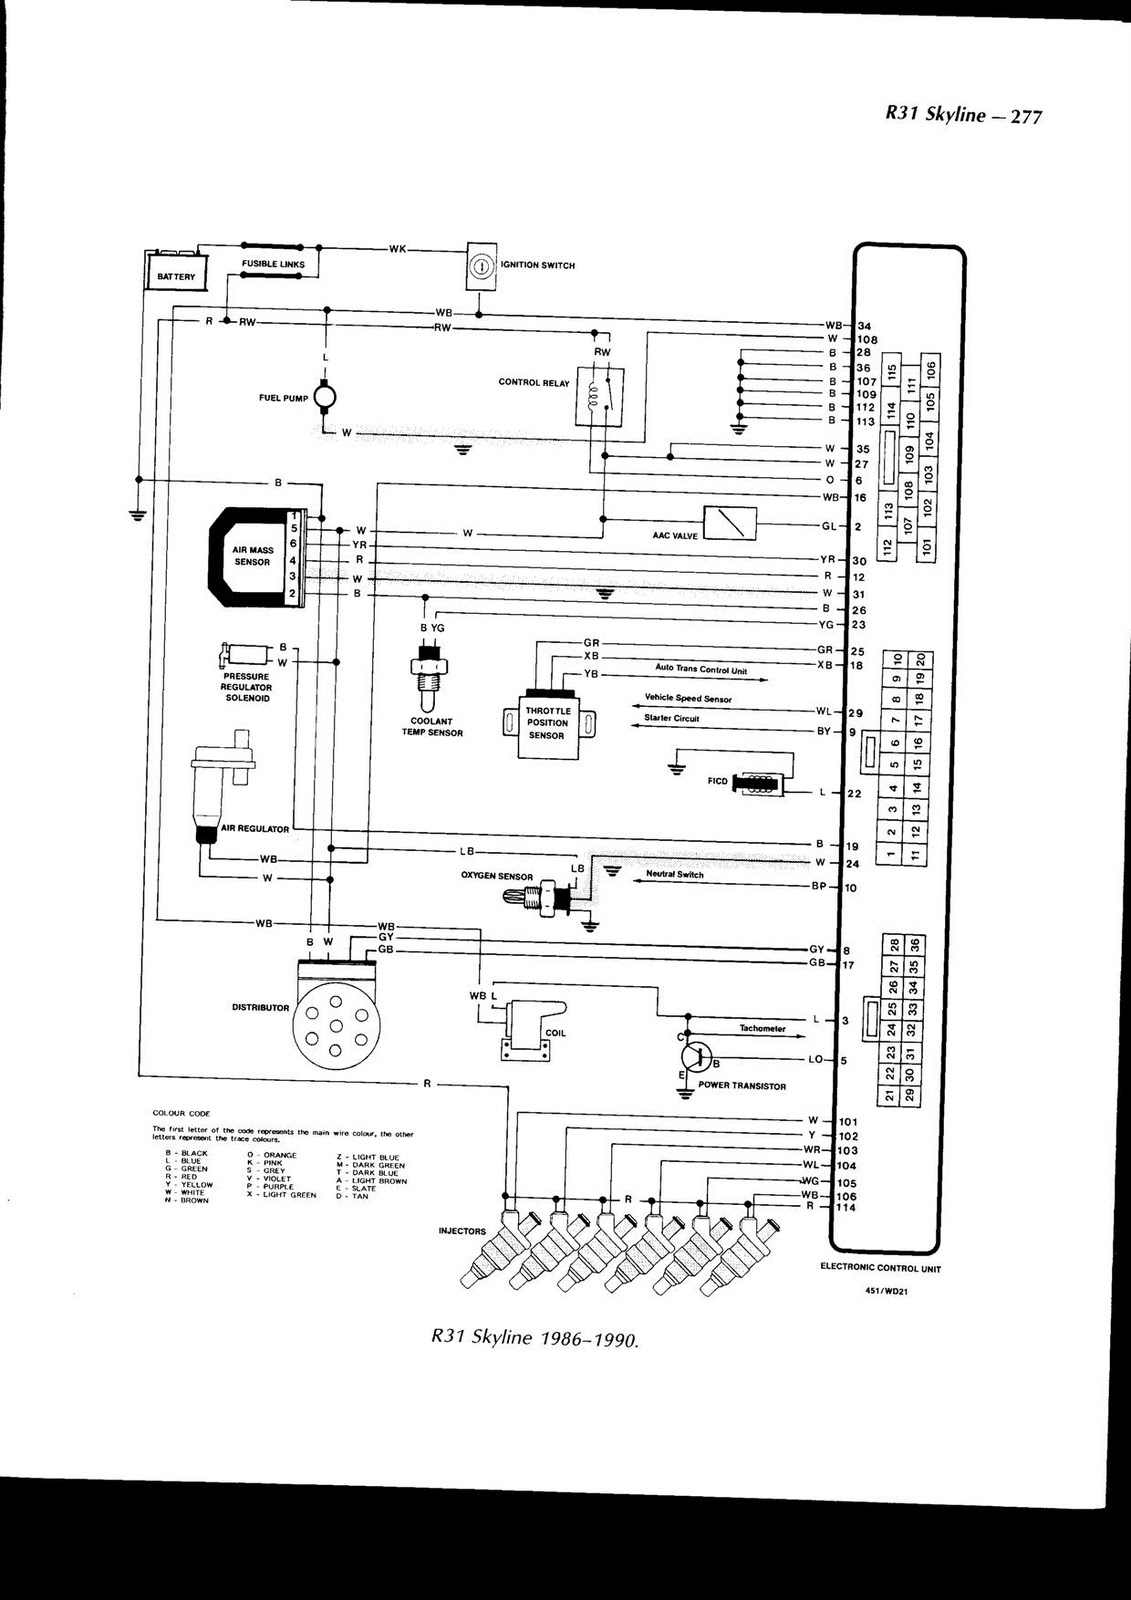 rb30 wiring diagrams | 280zx project electrical wiring diagram freeware electrical wiring diagram of ford f100 all about